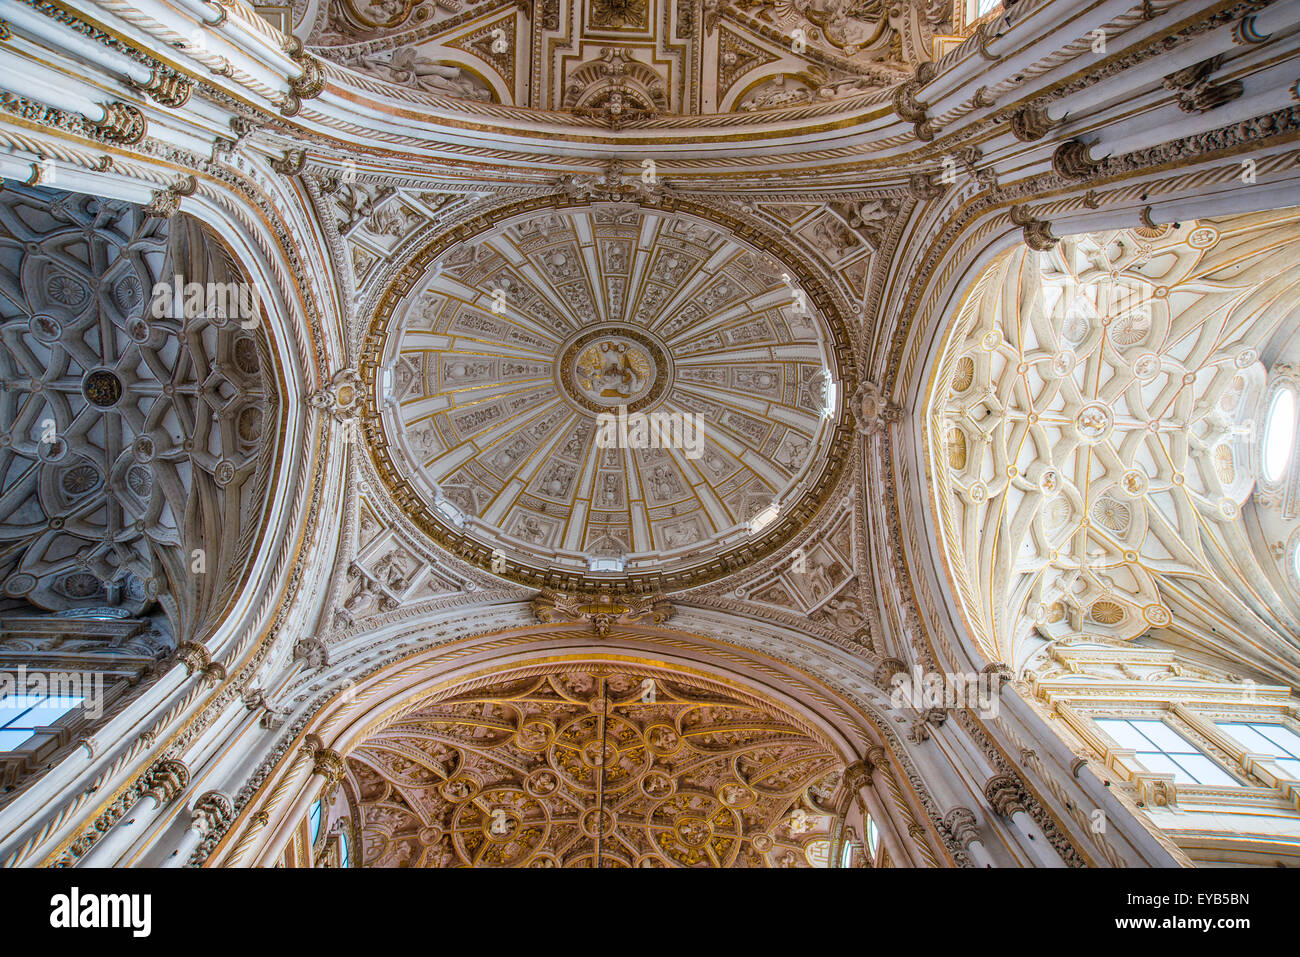 Cupola of the Cathedral, indoor view. Cordoba, Spain. - Stock Image